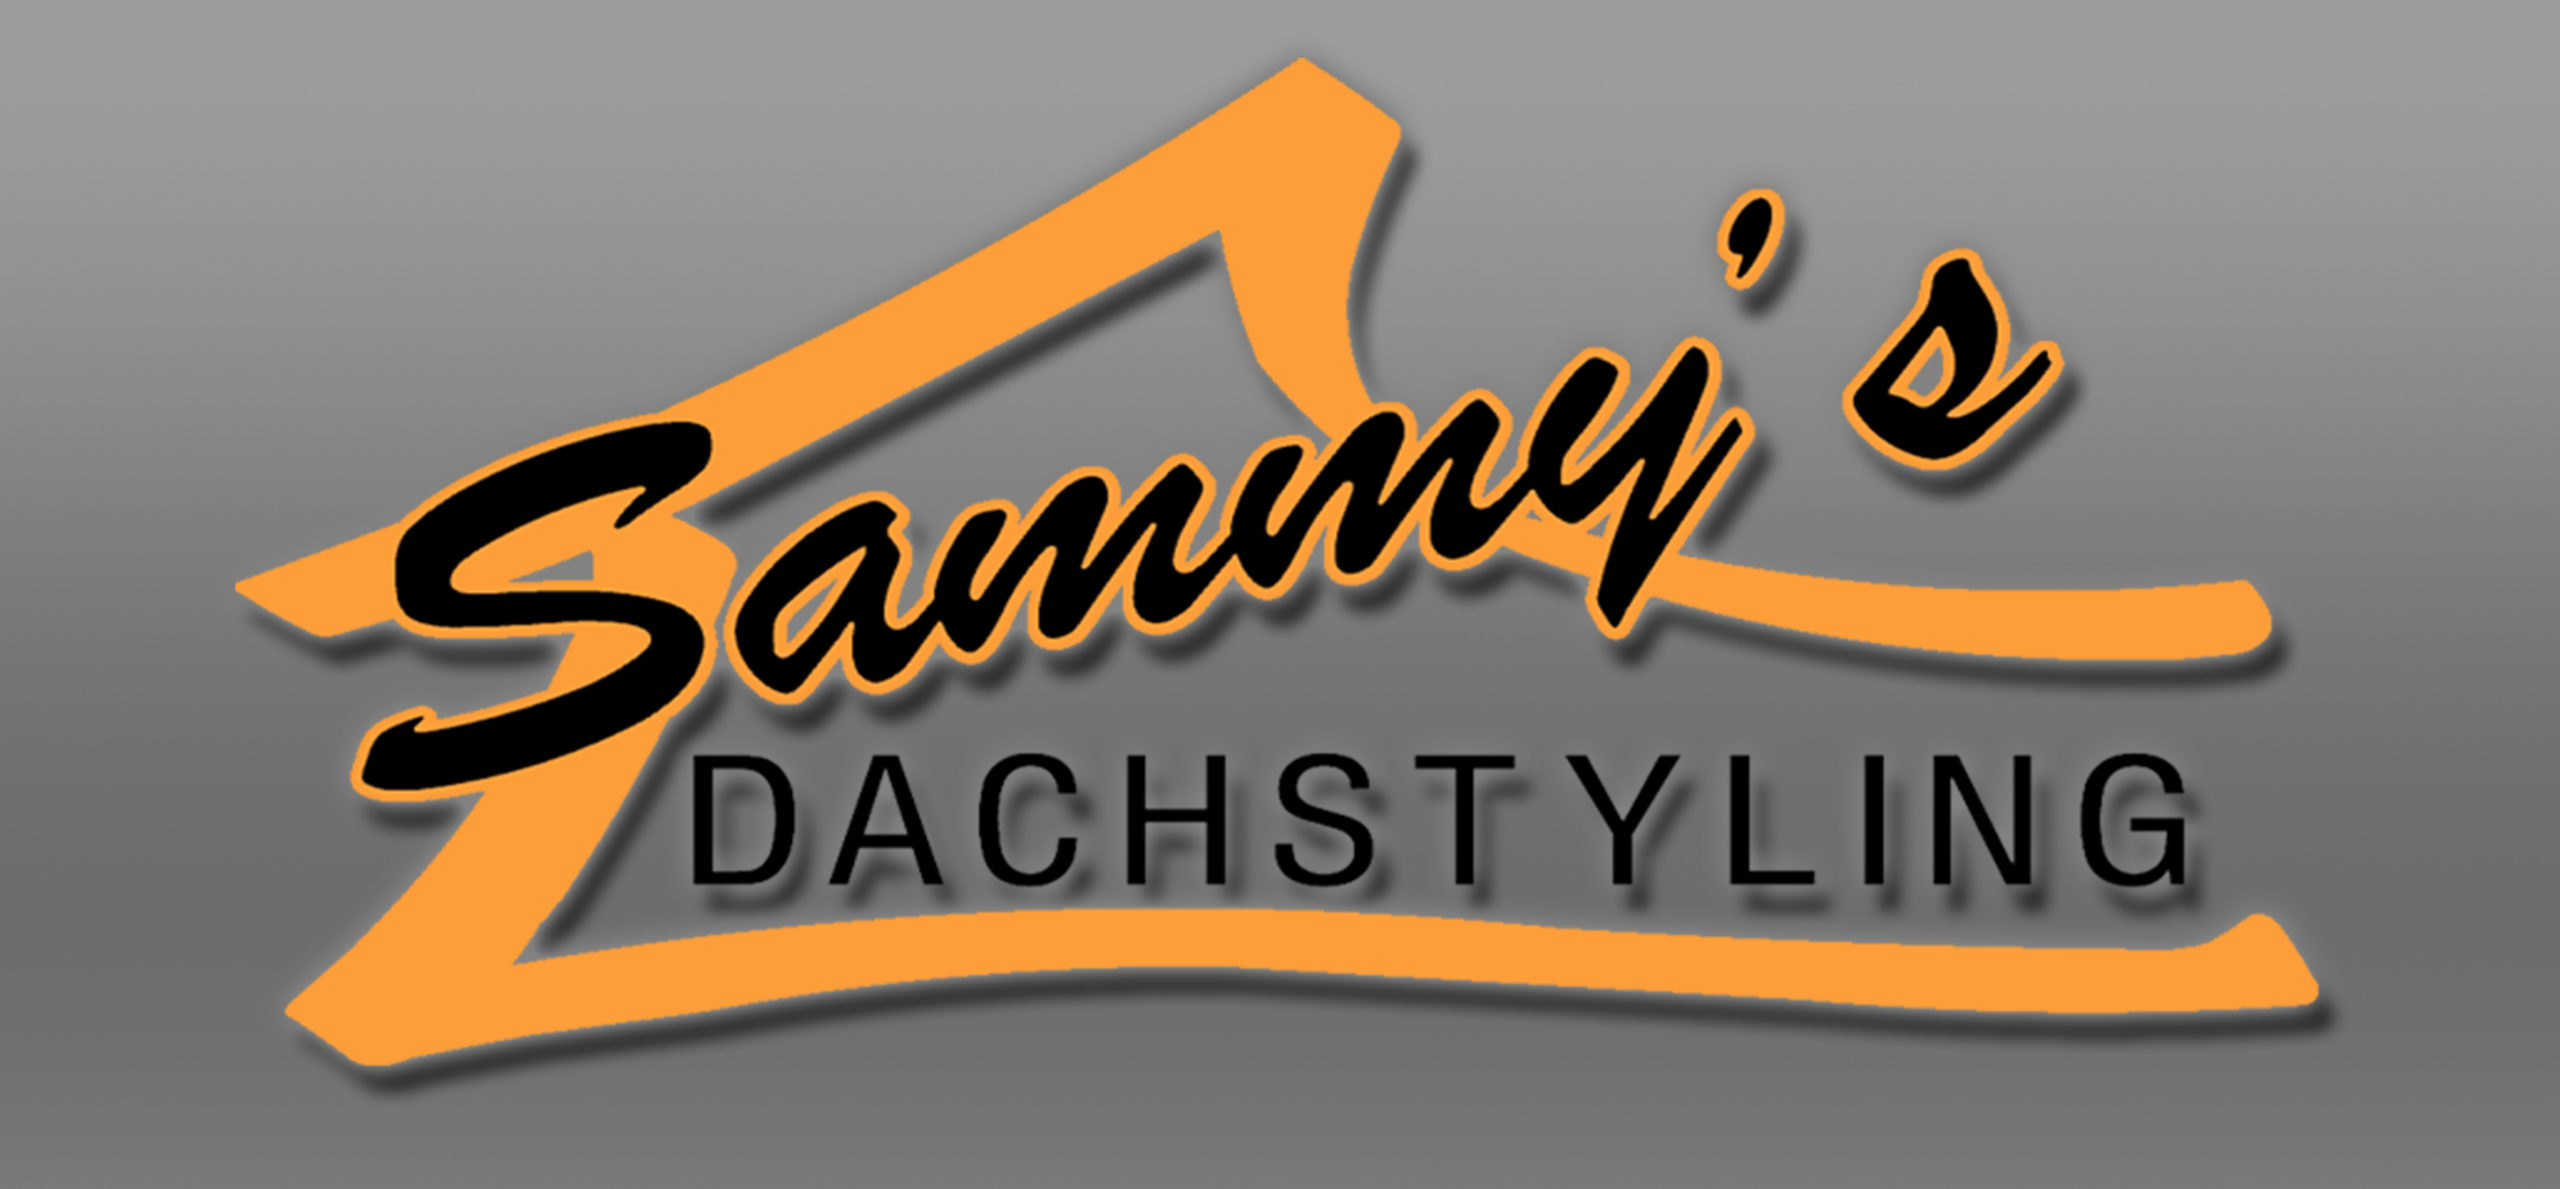 https://vfb-oldenburg.de/wp-content/uploads/Sammy_Logo-scaled.jpg